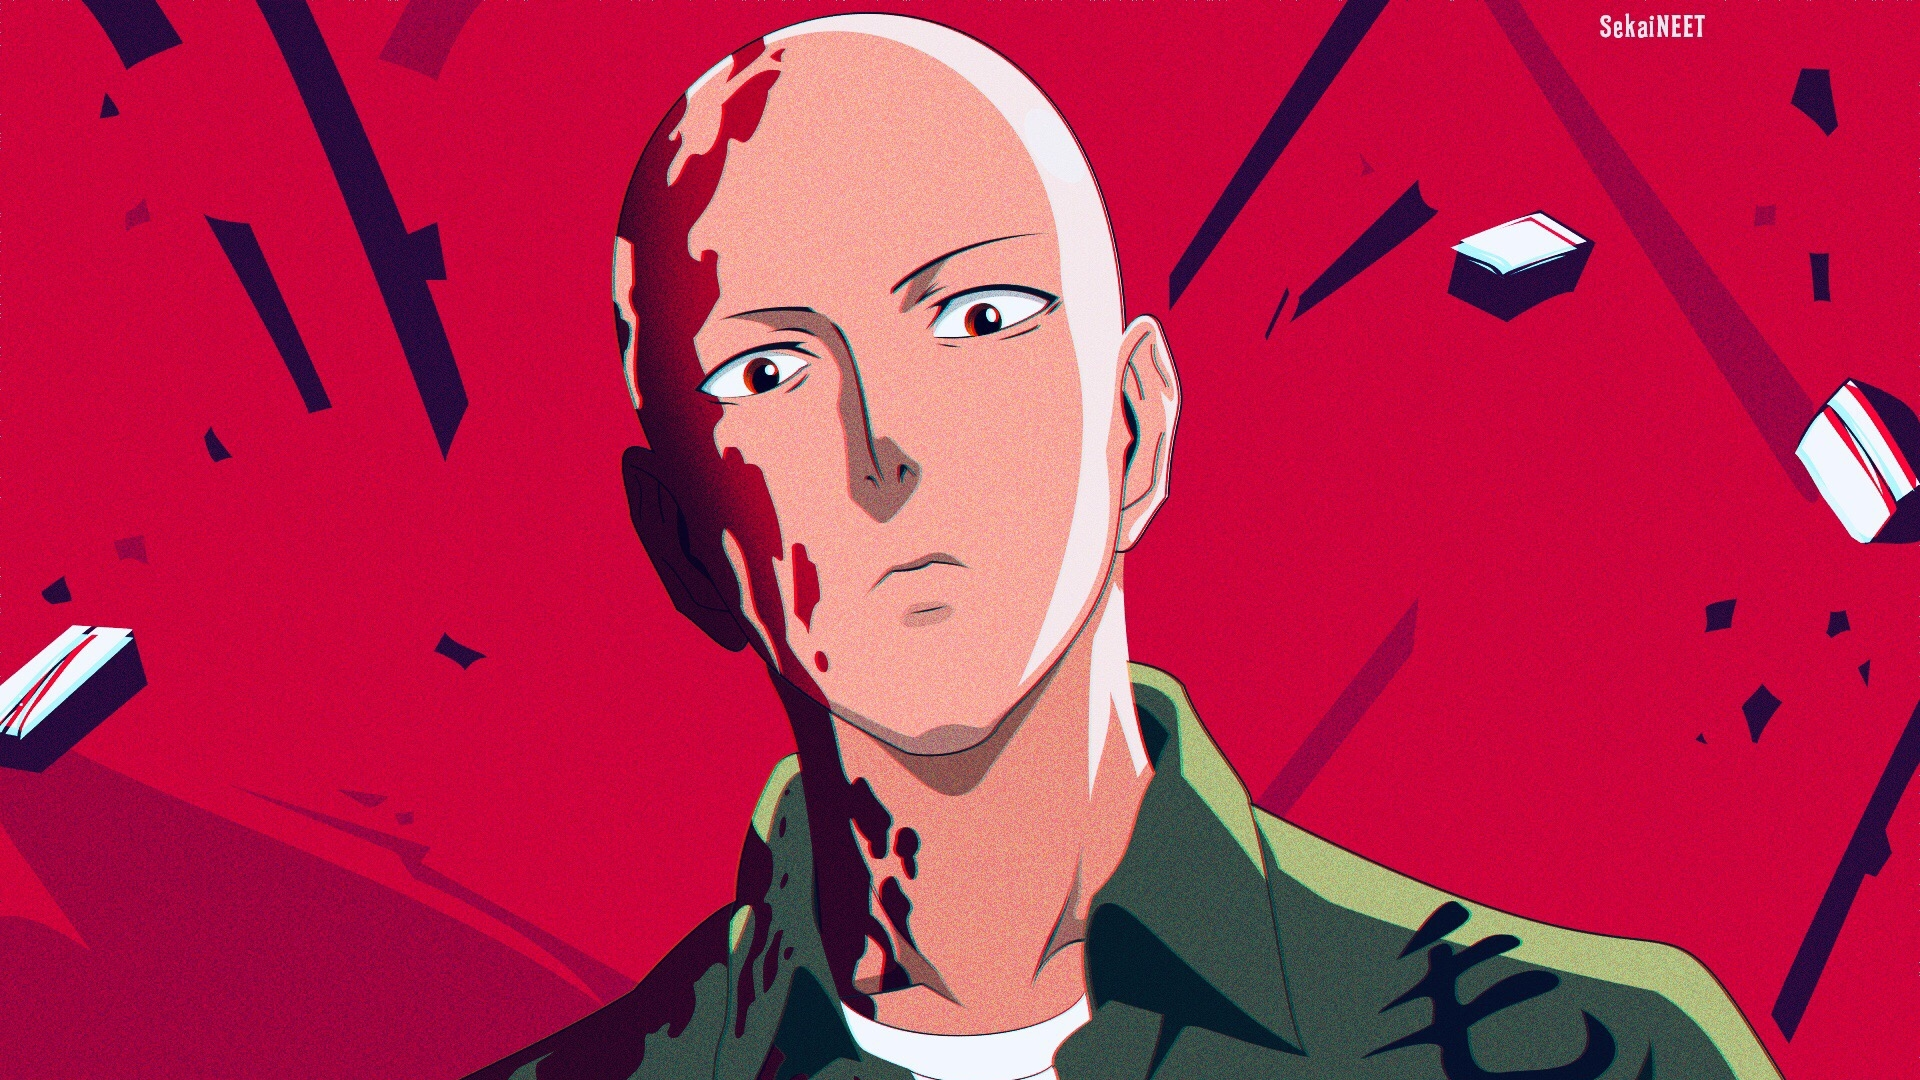 Wallpaper Of Saitama One Punch Man Art Background Hd Image